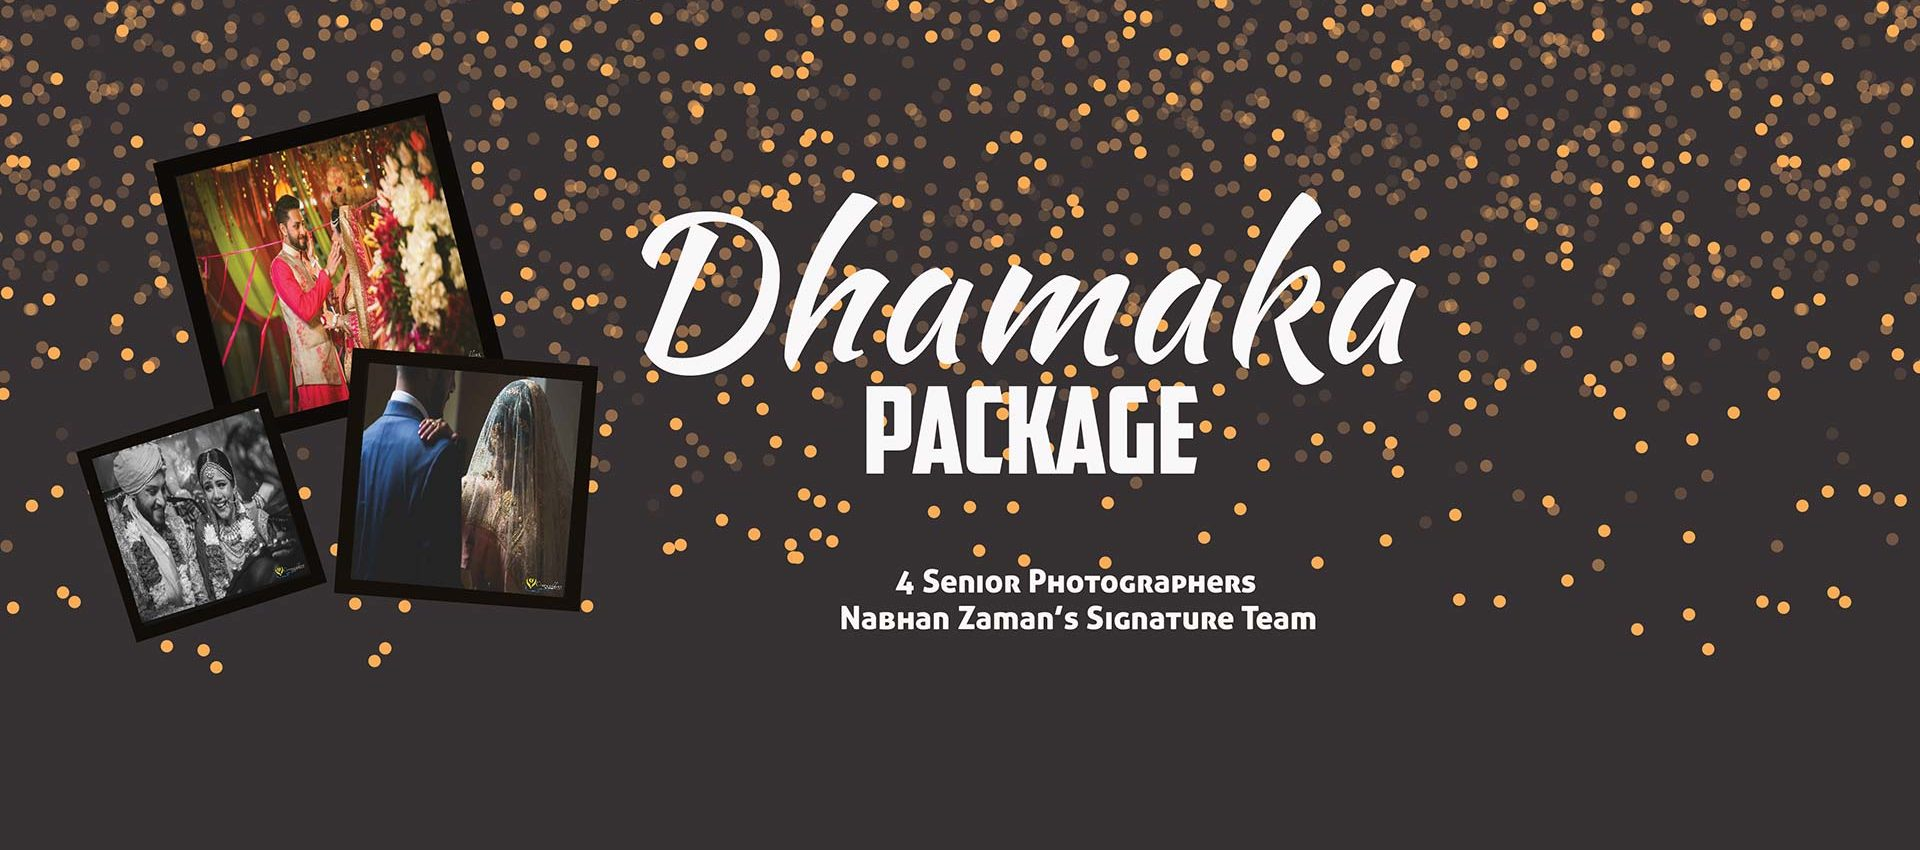 Dhamaka Package Photo-01